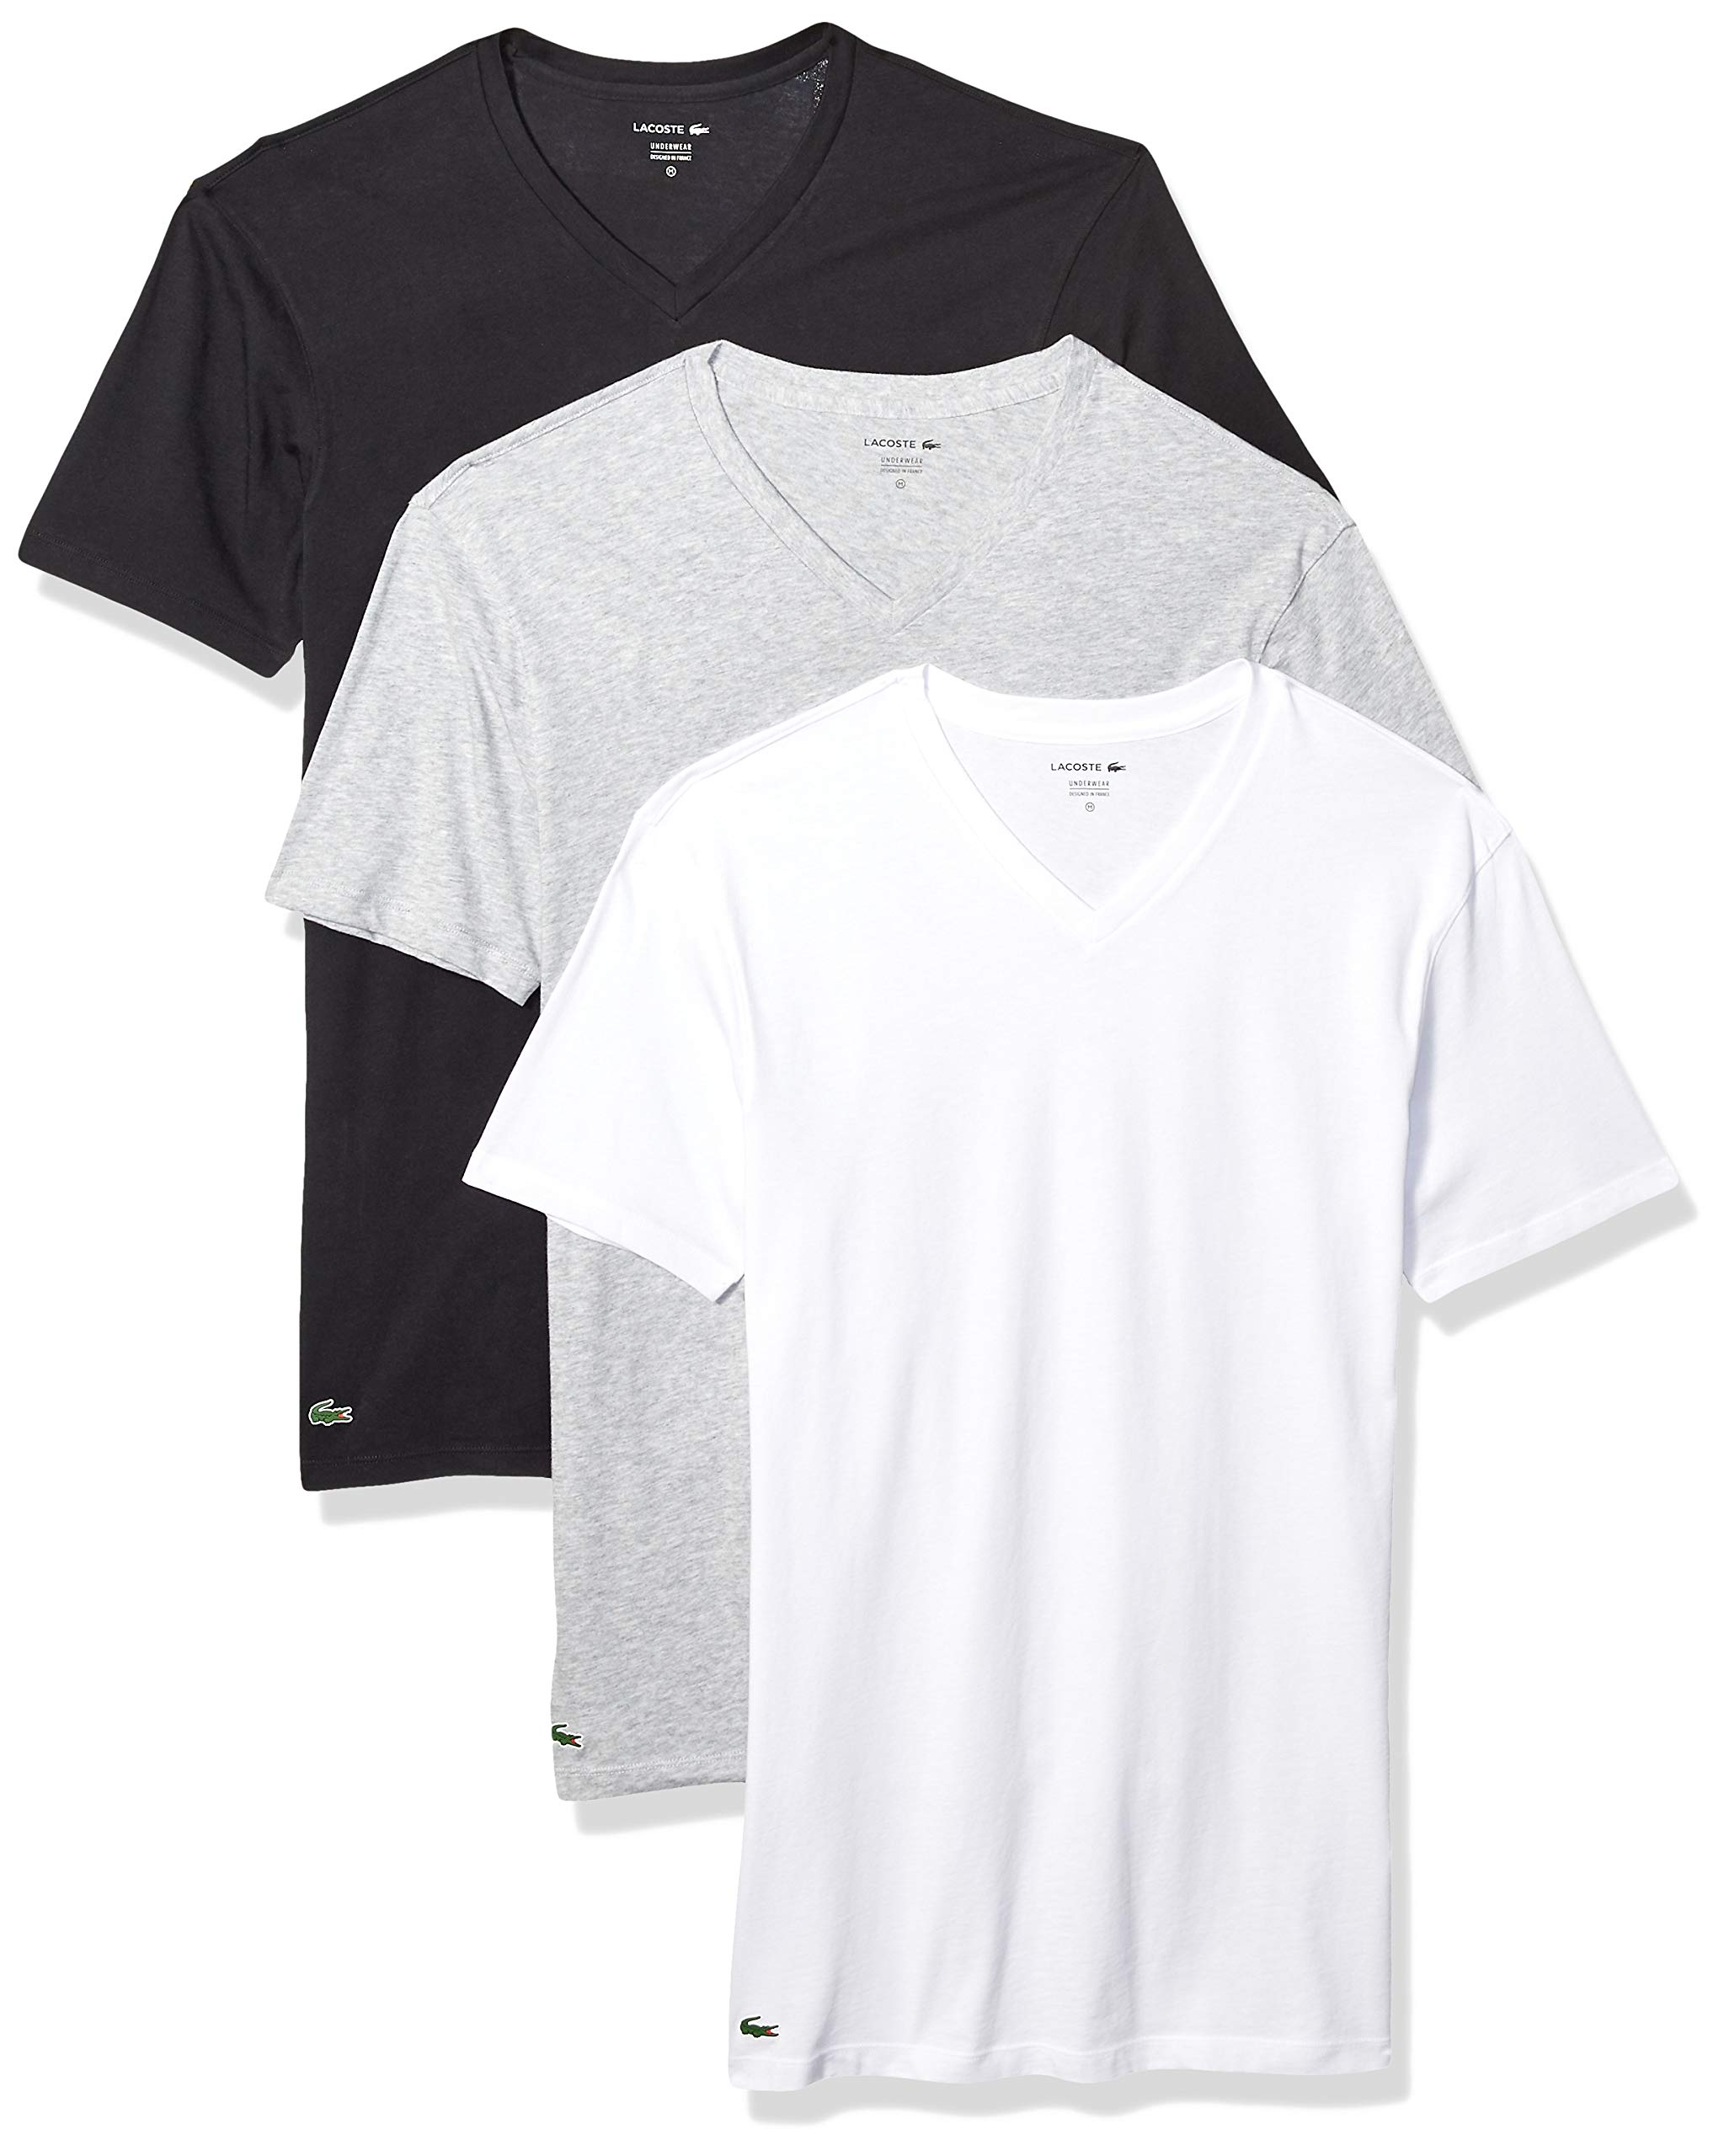 3d96f751 Galleon - Lacoste Men's Classic Fit Cotton V Neck Tee, Multipack, Black,  Grey, White, Medium